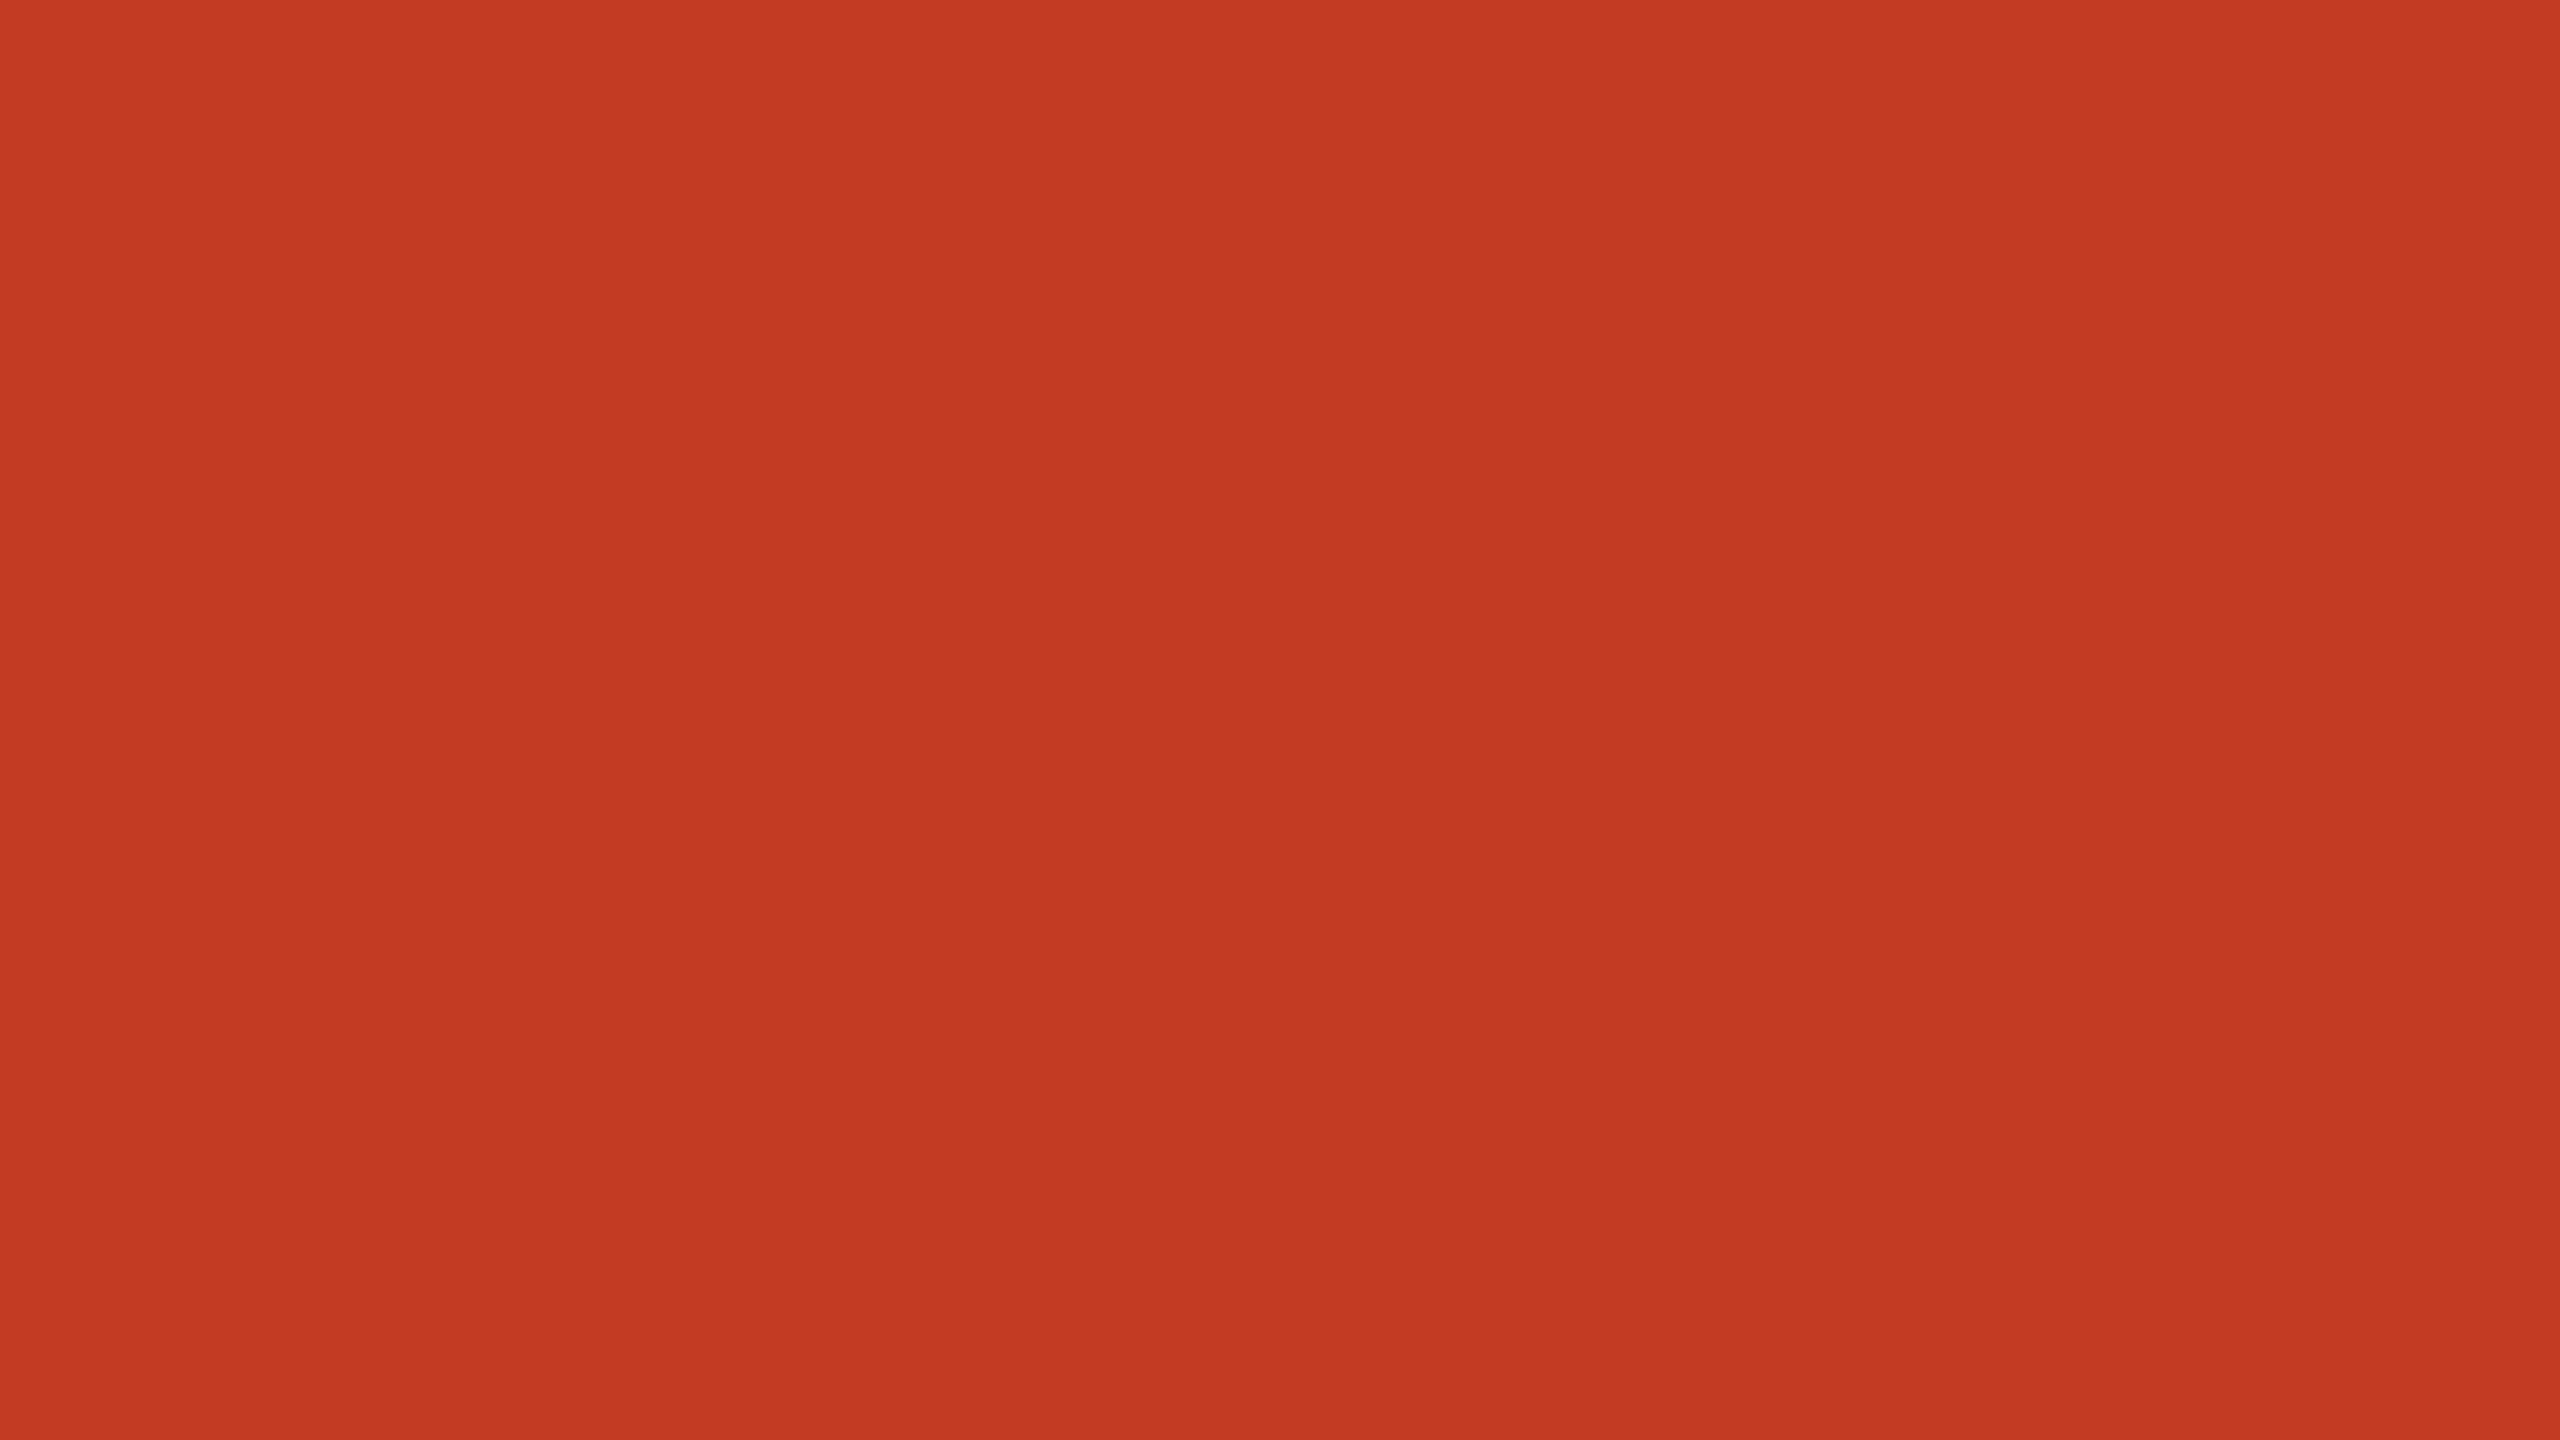 2560x1440 Dark Pastel Red Solid Color Background